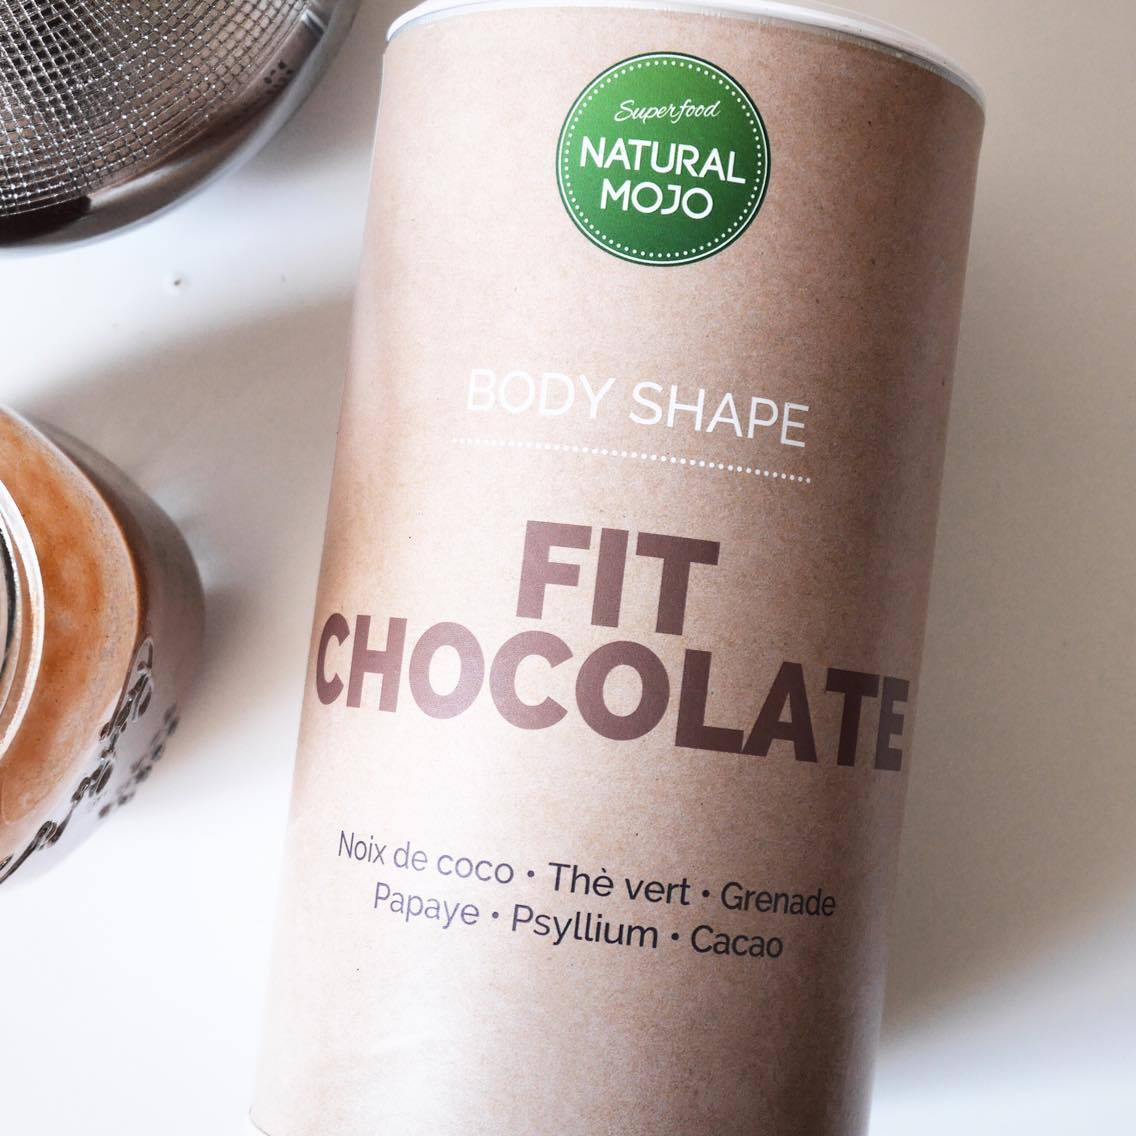 BODY Shape Fit Chocolate de Natural Mojo - Help Yourself